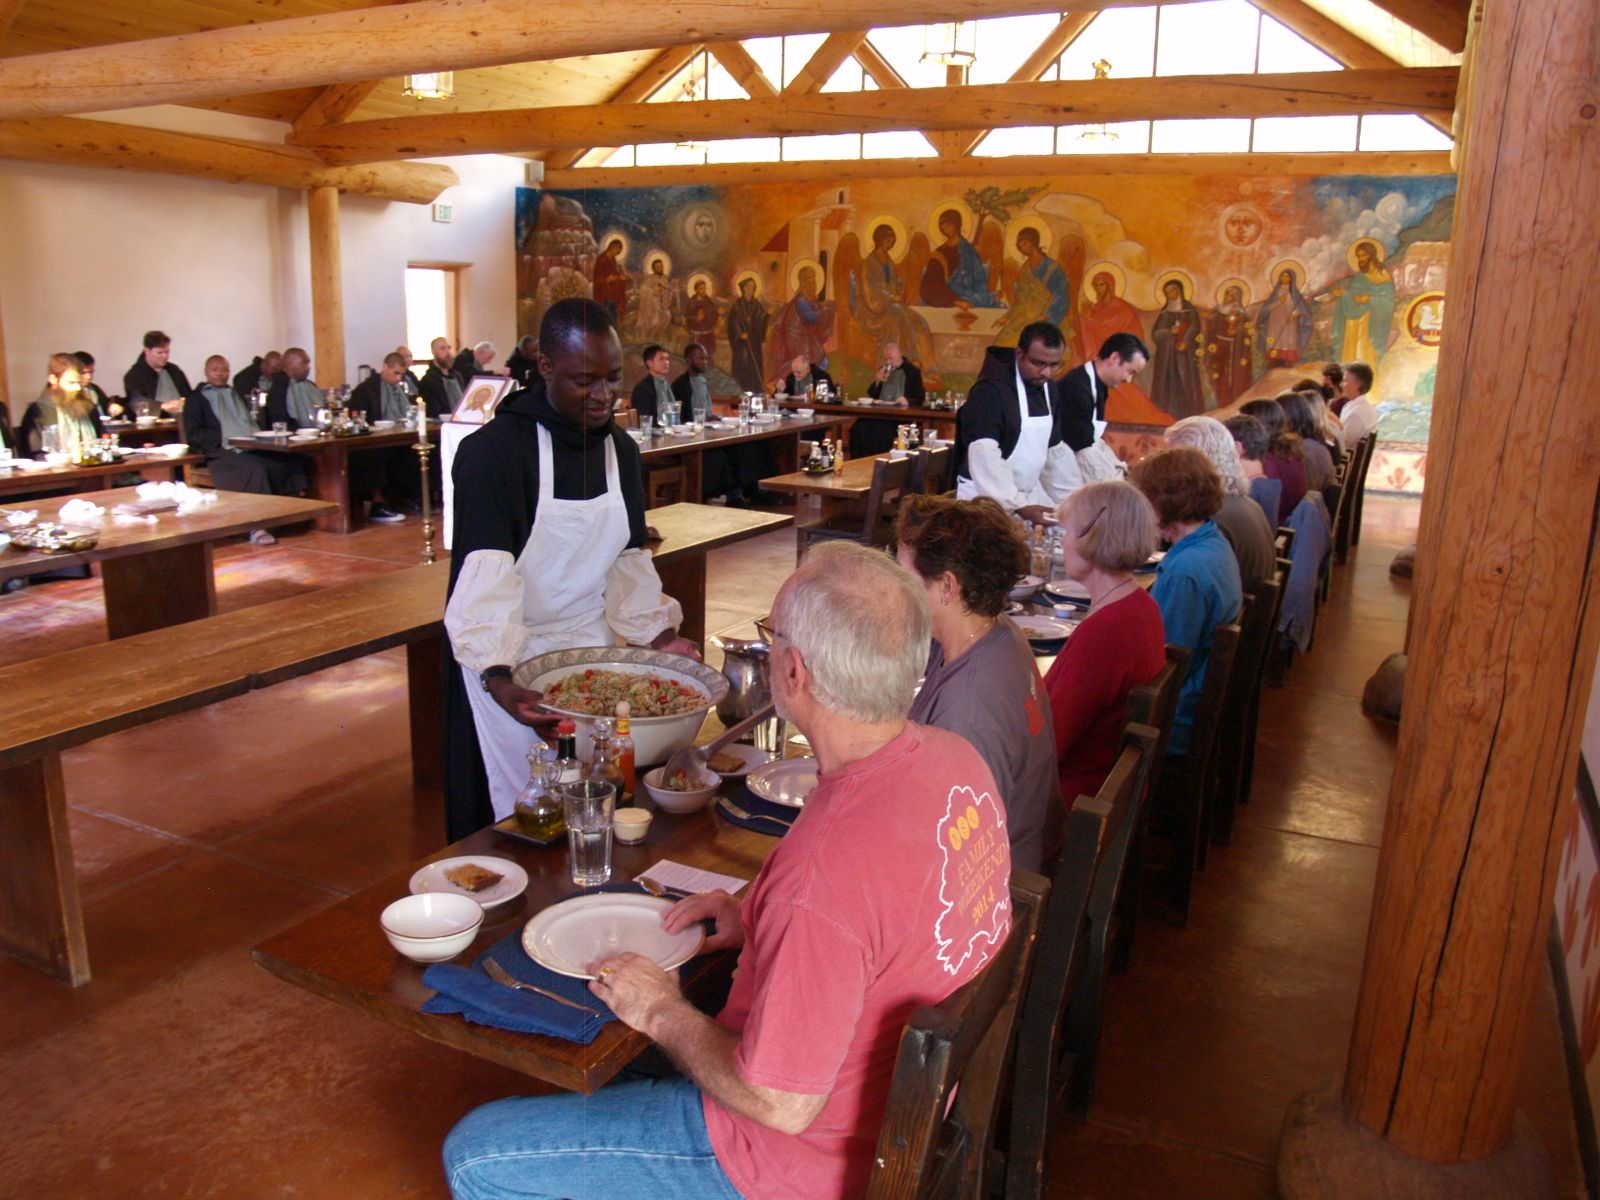 Brothers serving the guests in the refectory